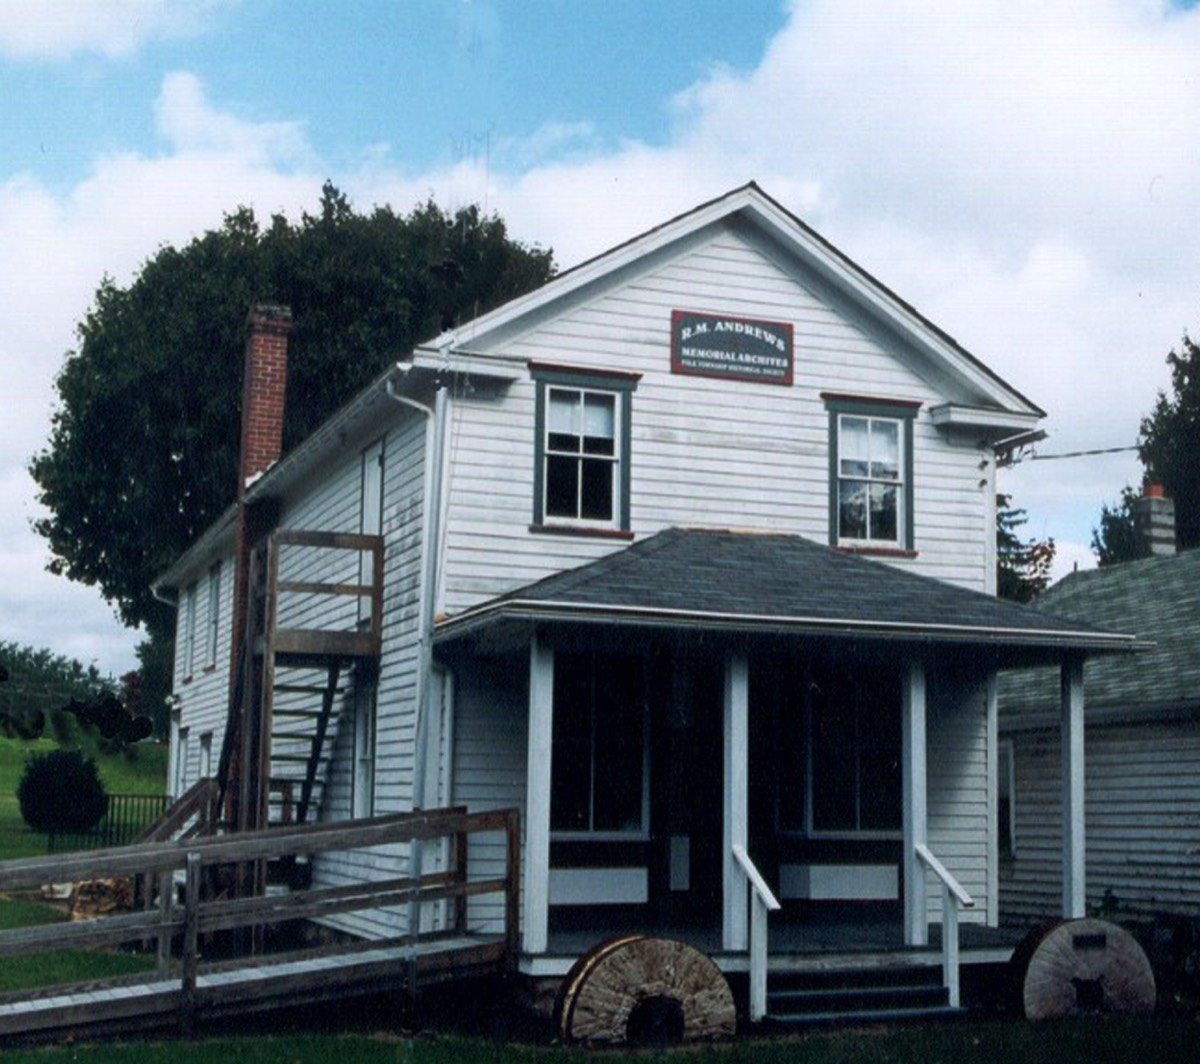 2006 | R.M. Andrews Memorial Building, Polk Twp (1888)